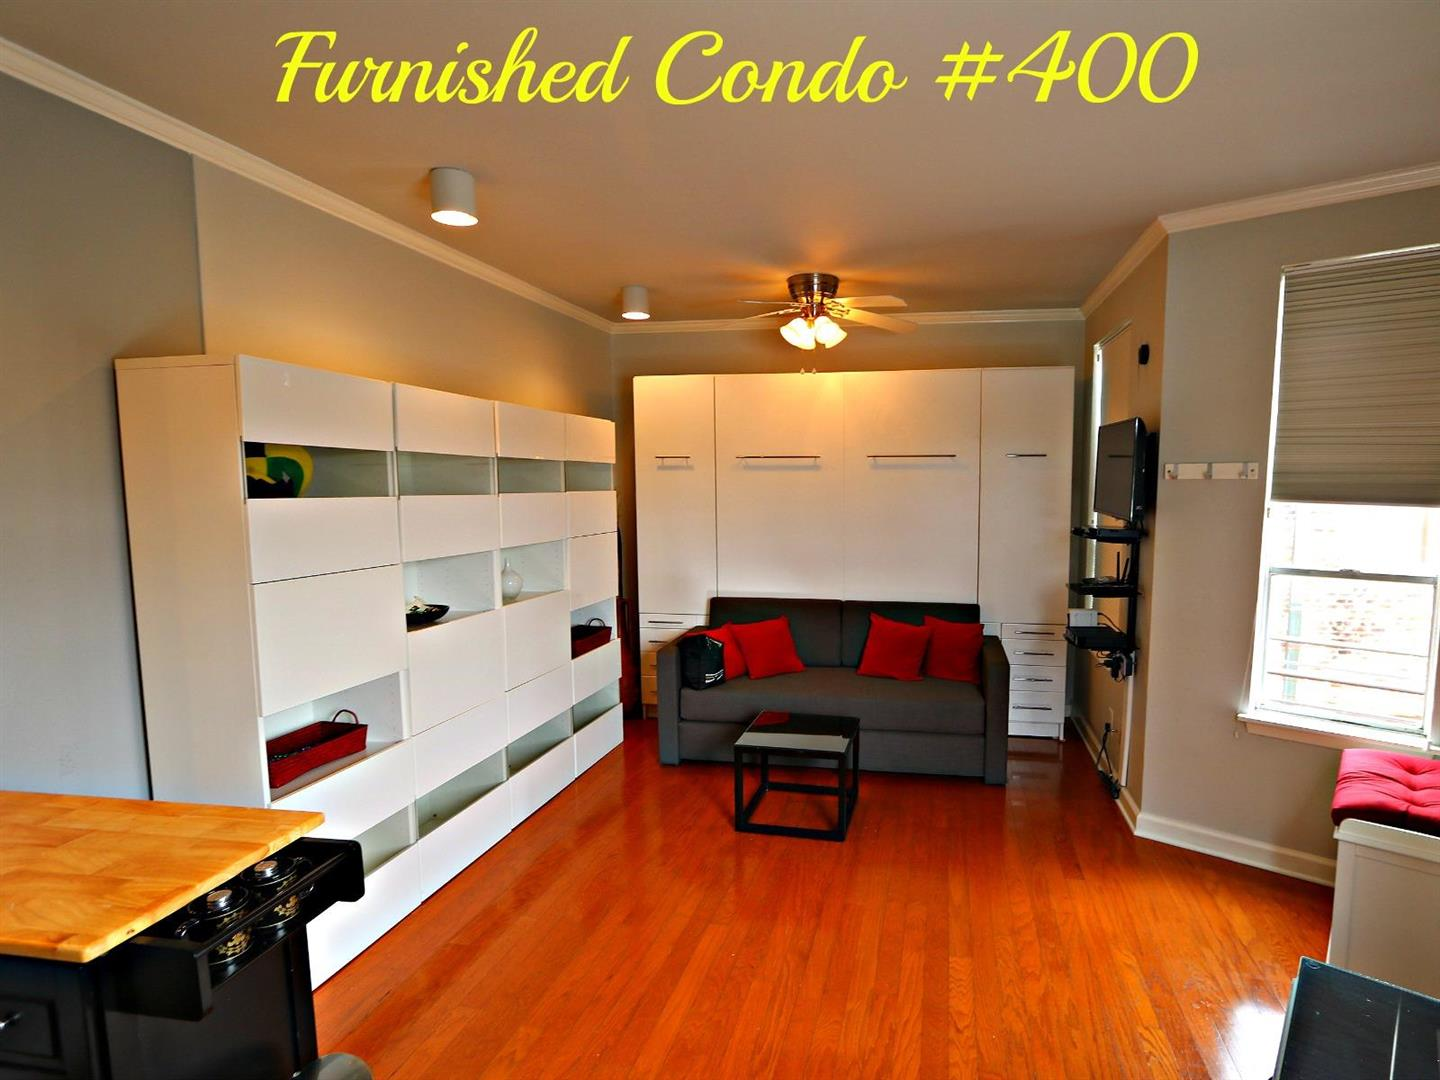 448JuliaCondo400Furnished.jpg